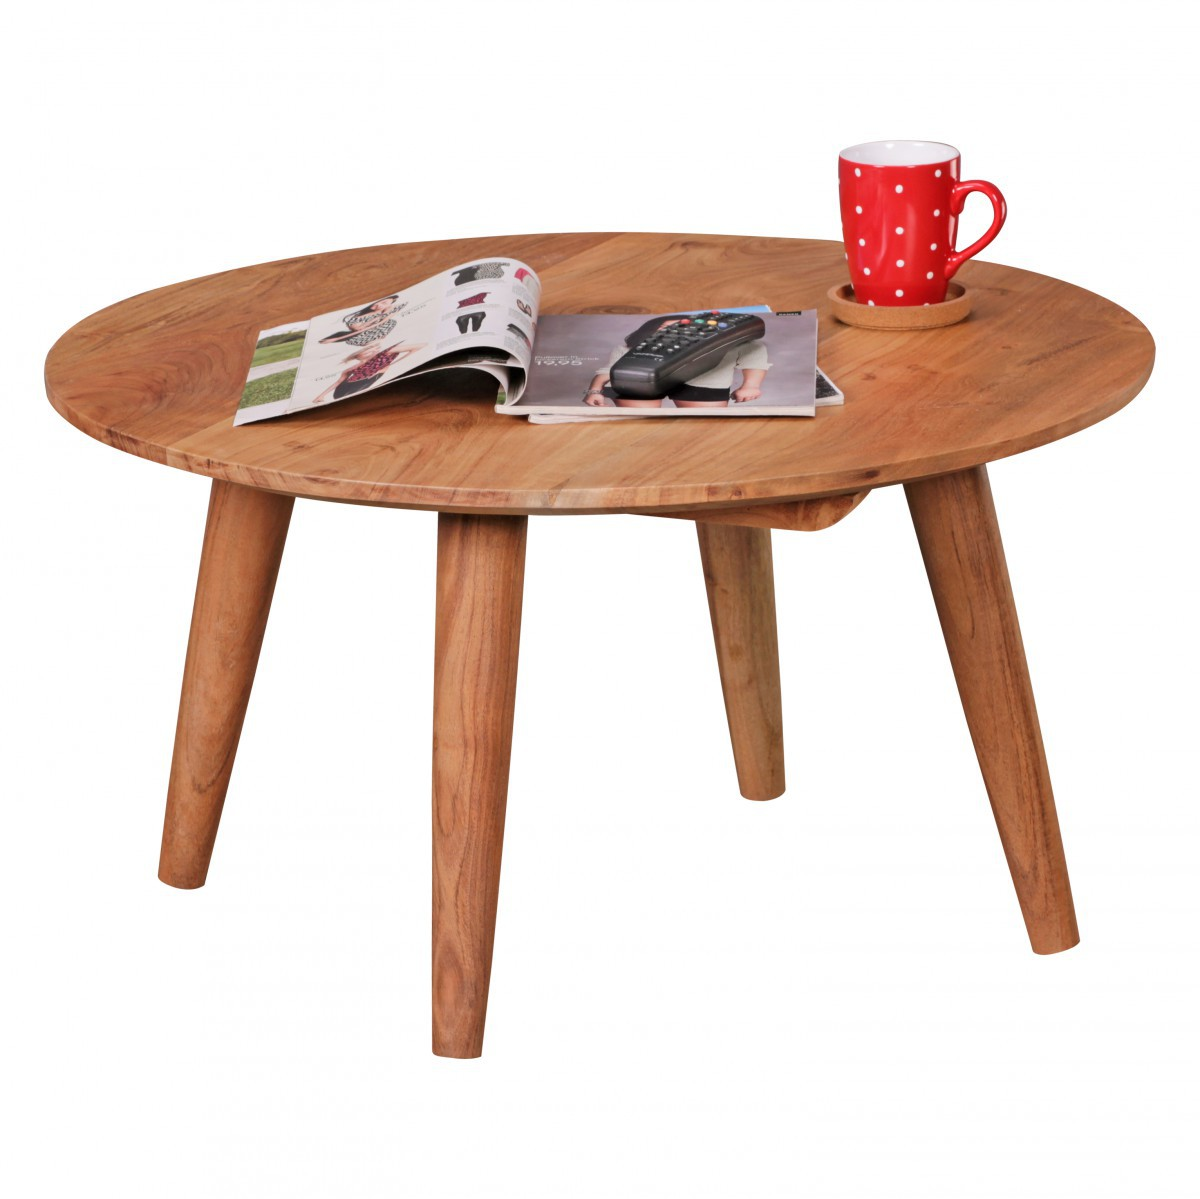 Finebuy table basse en bois massif acacia table basse - Tables basses rondes ...